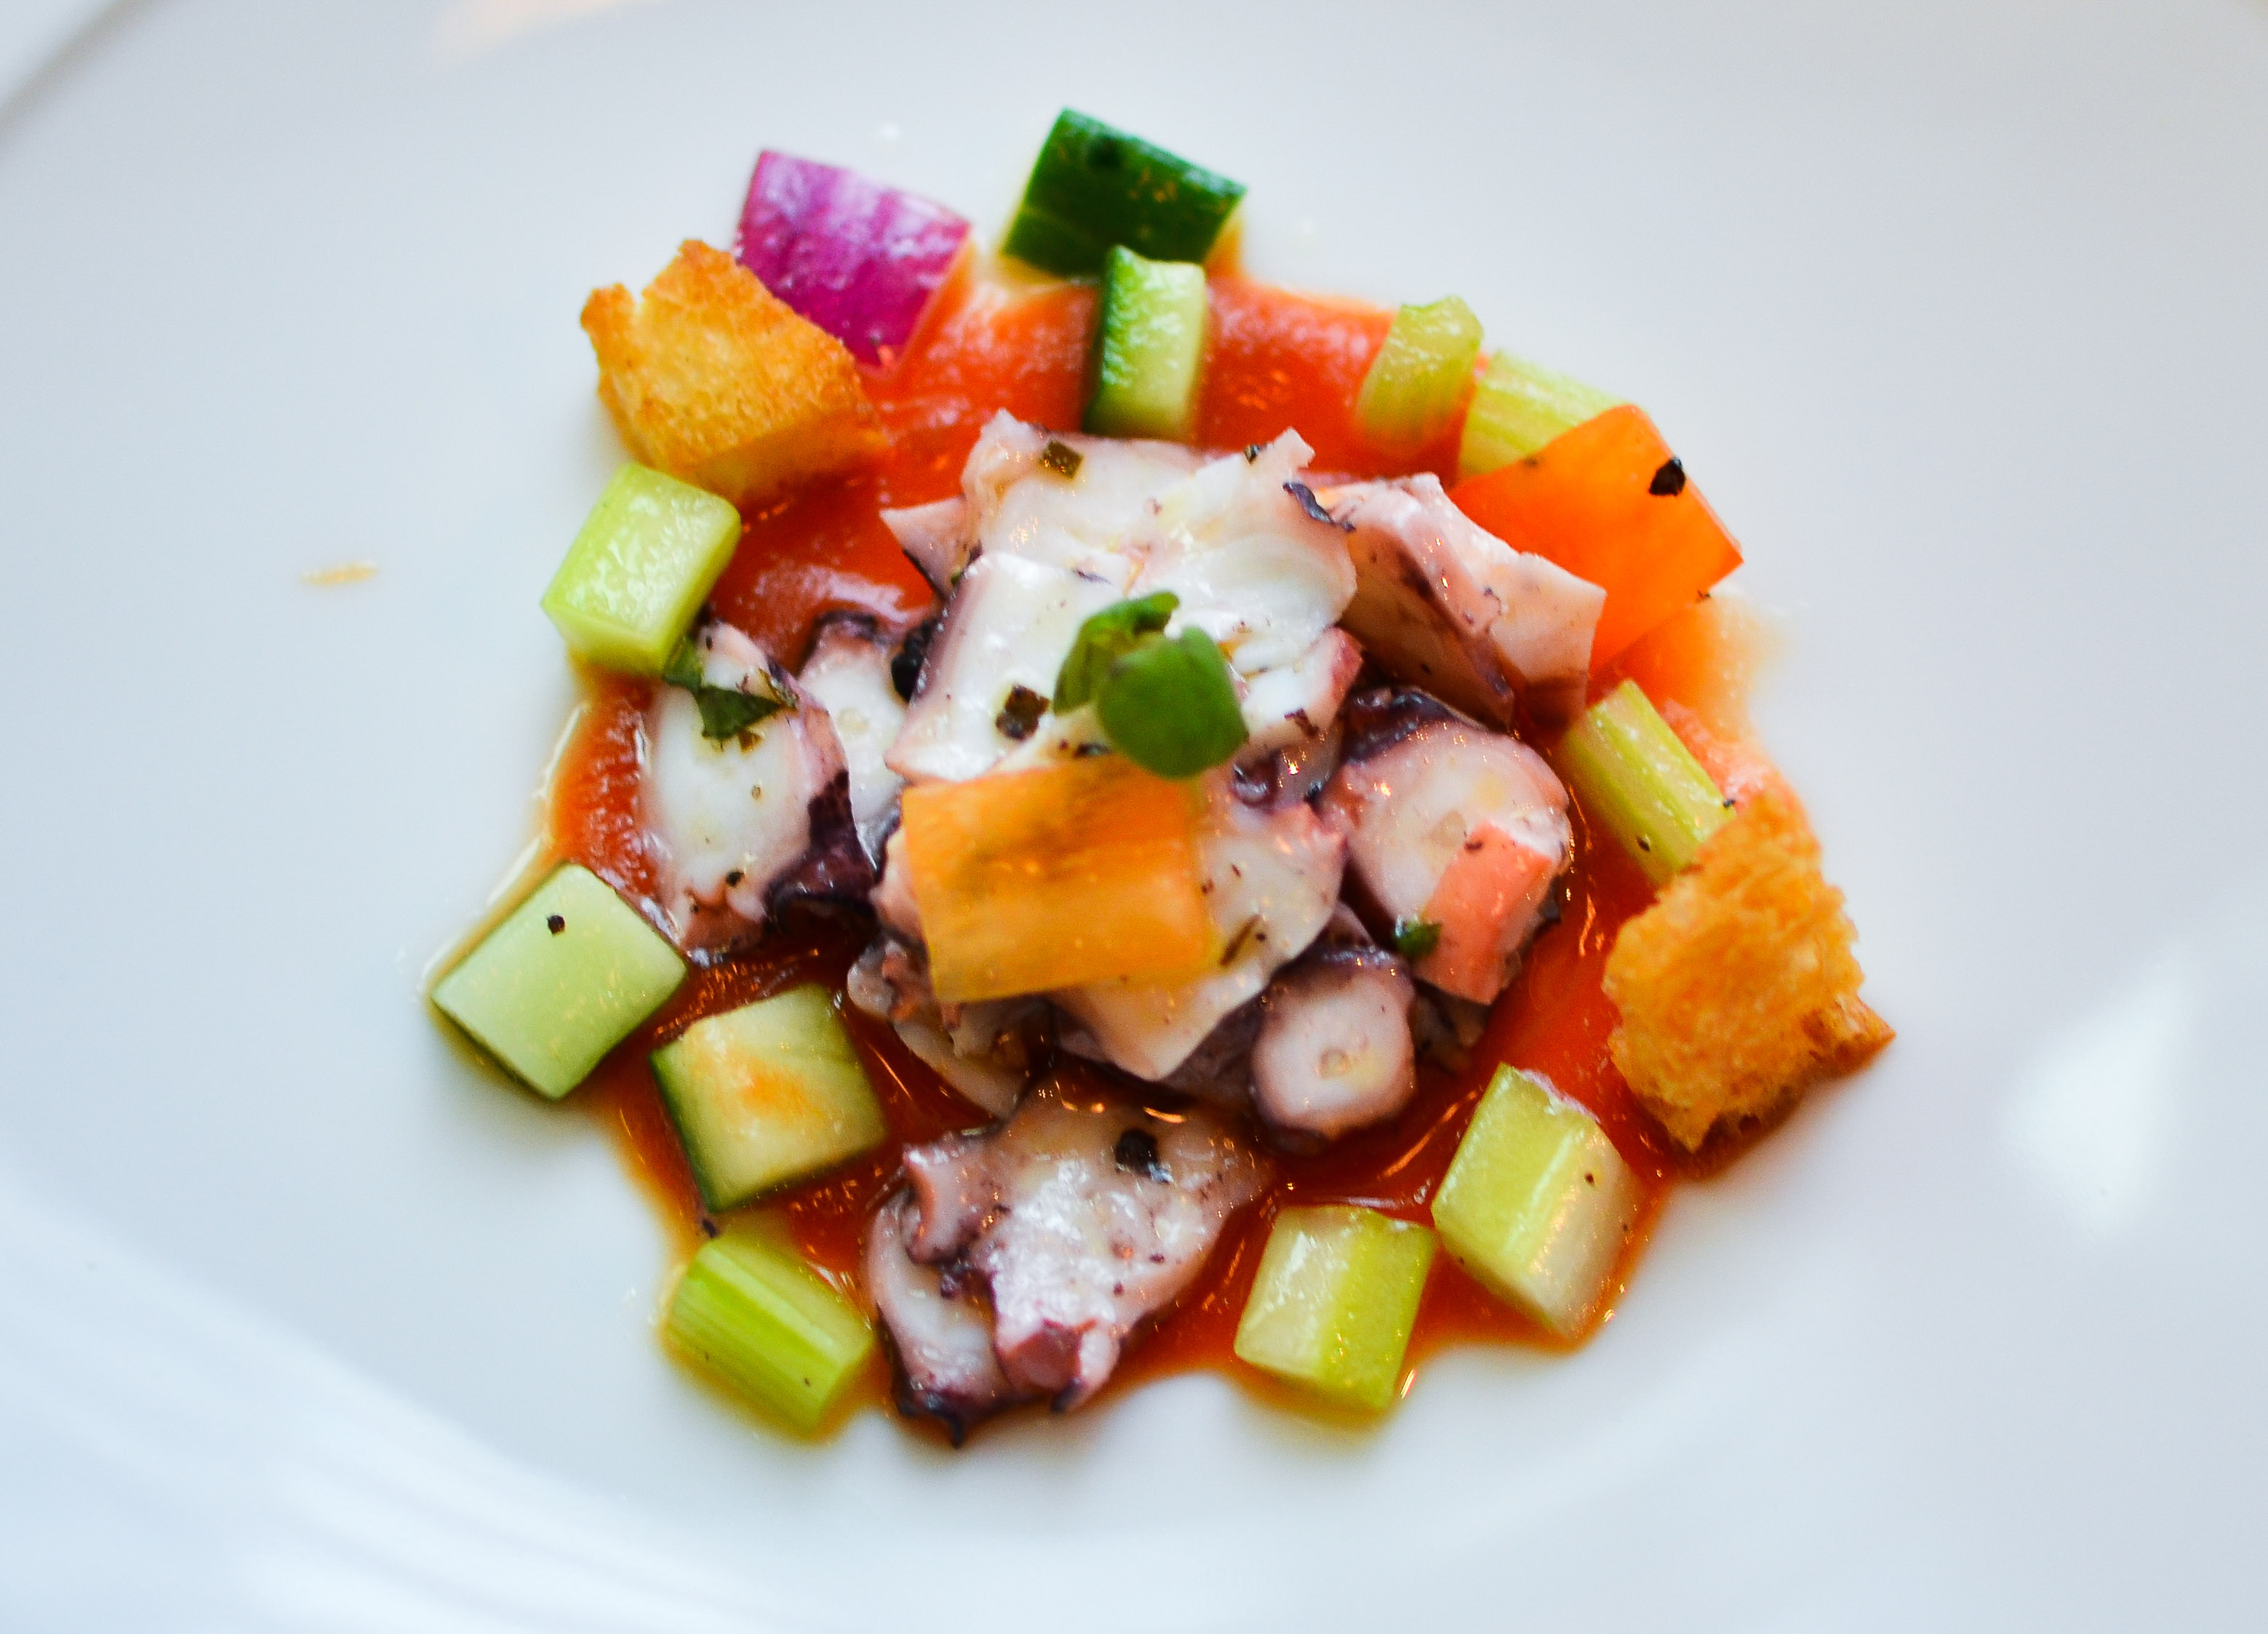 Octopus ceviche at Beefbar HK